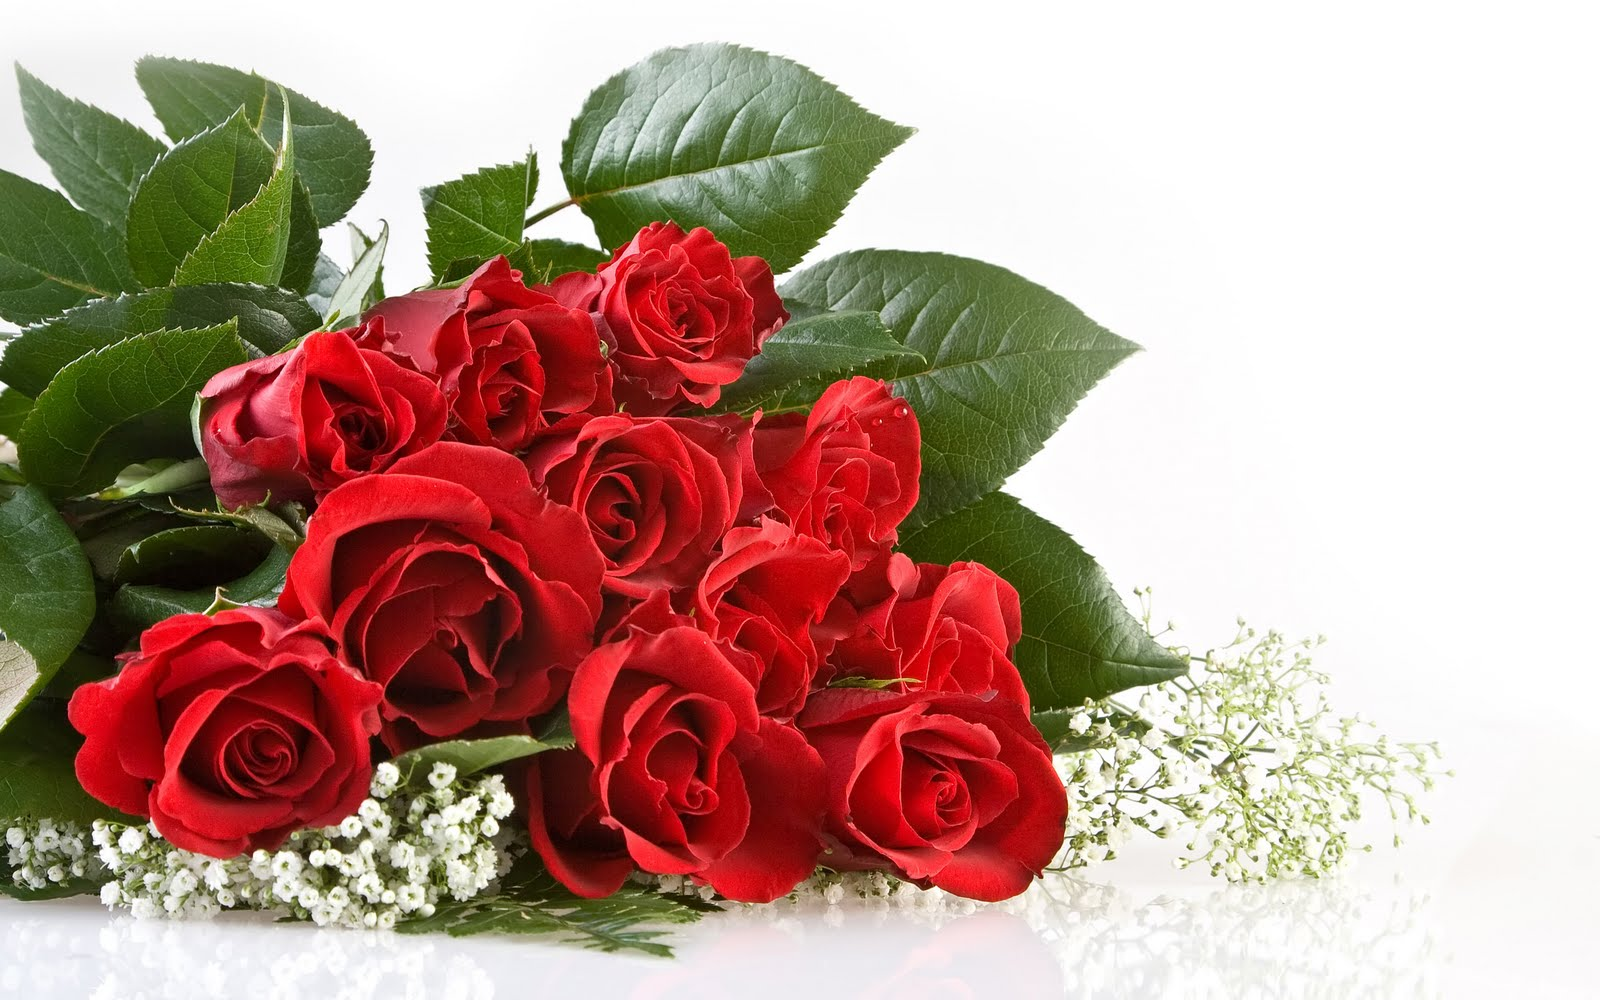 http://2.bp.blogspot.com/-gS8jqL69bU0/TaqGIjE7eeI/AAAAAAAAAB4/BL1zyGt9JV0/s1600/The-best-top-desktop-roses-wallpapers-hd-rose-wallpaper-46-bunch-of-red-roses.jpg